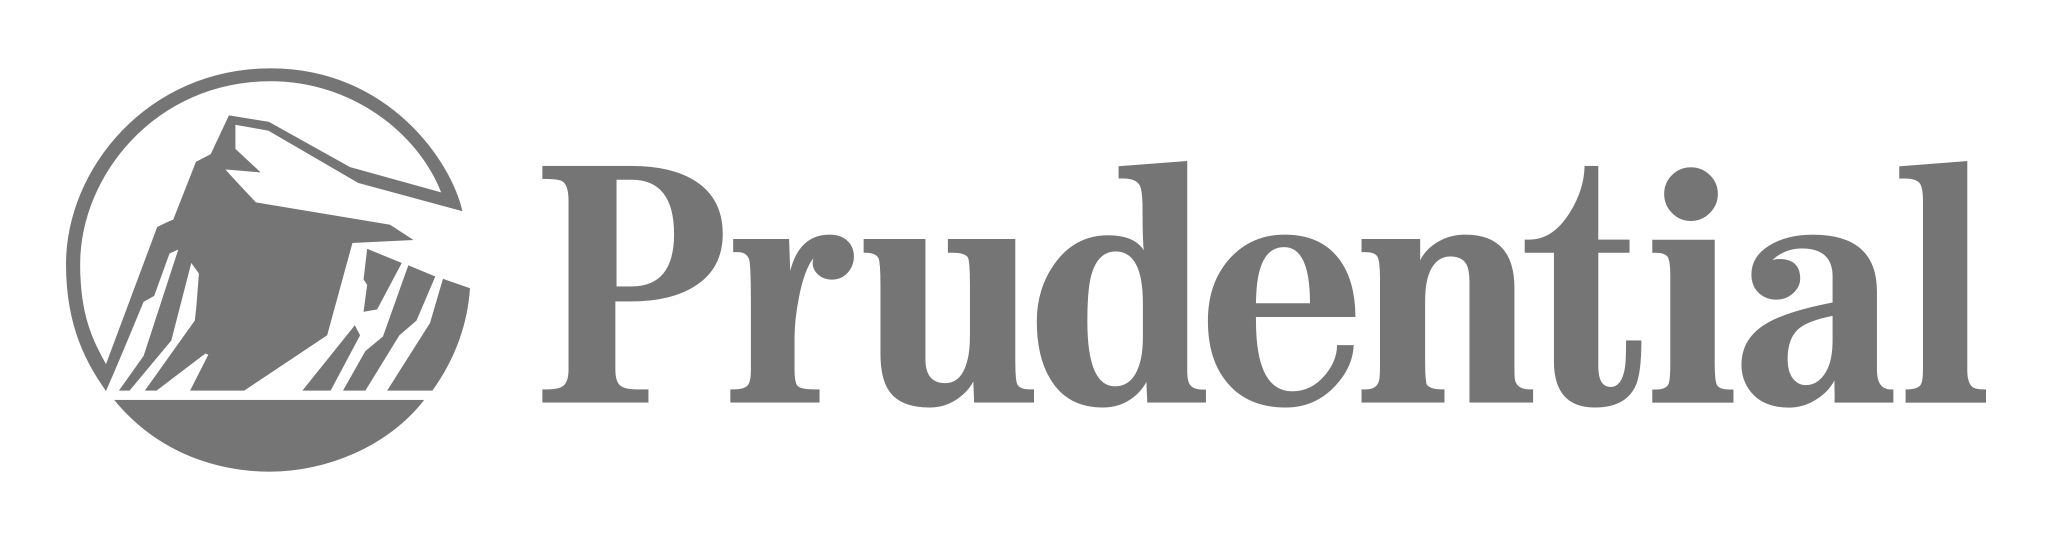 Prudential Logo - 2052x540.png